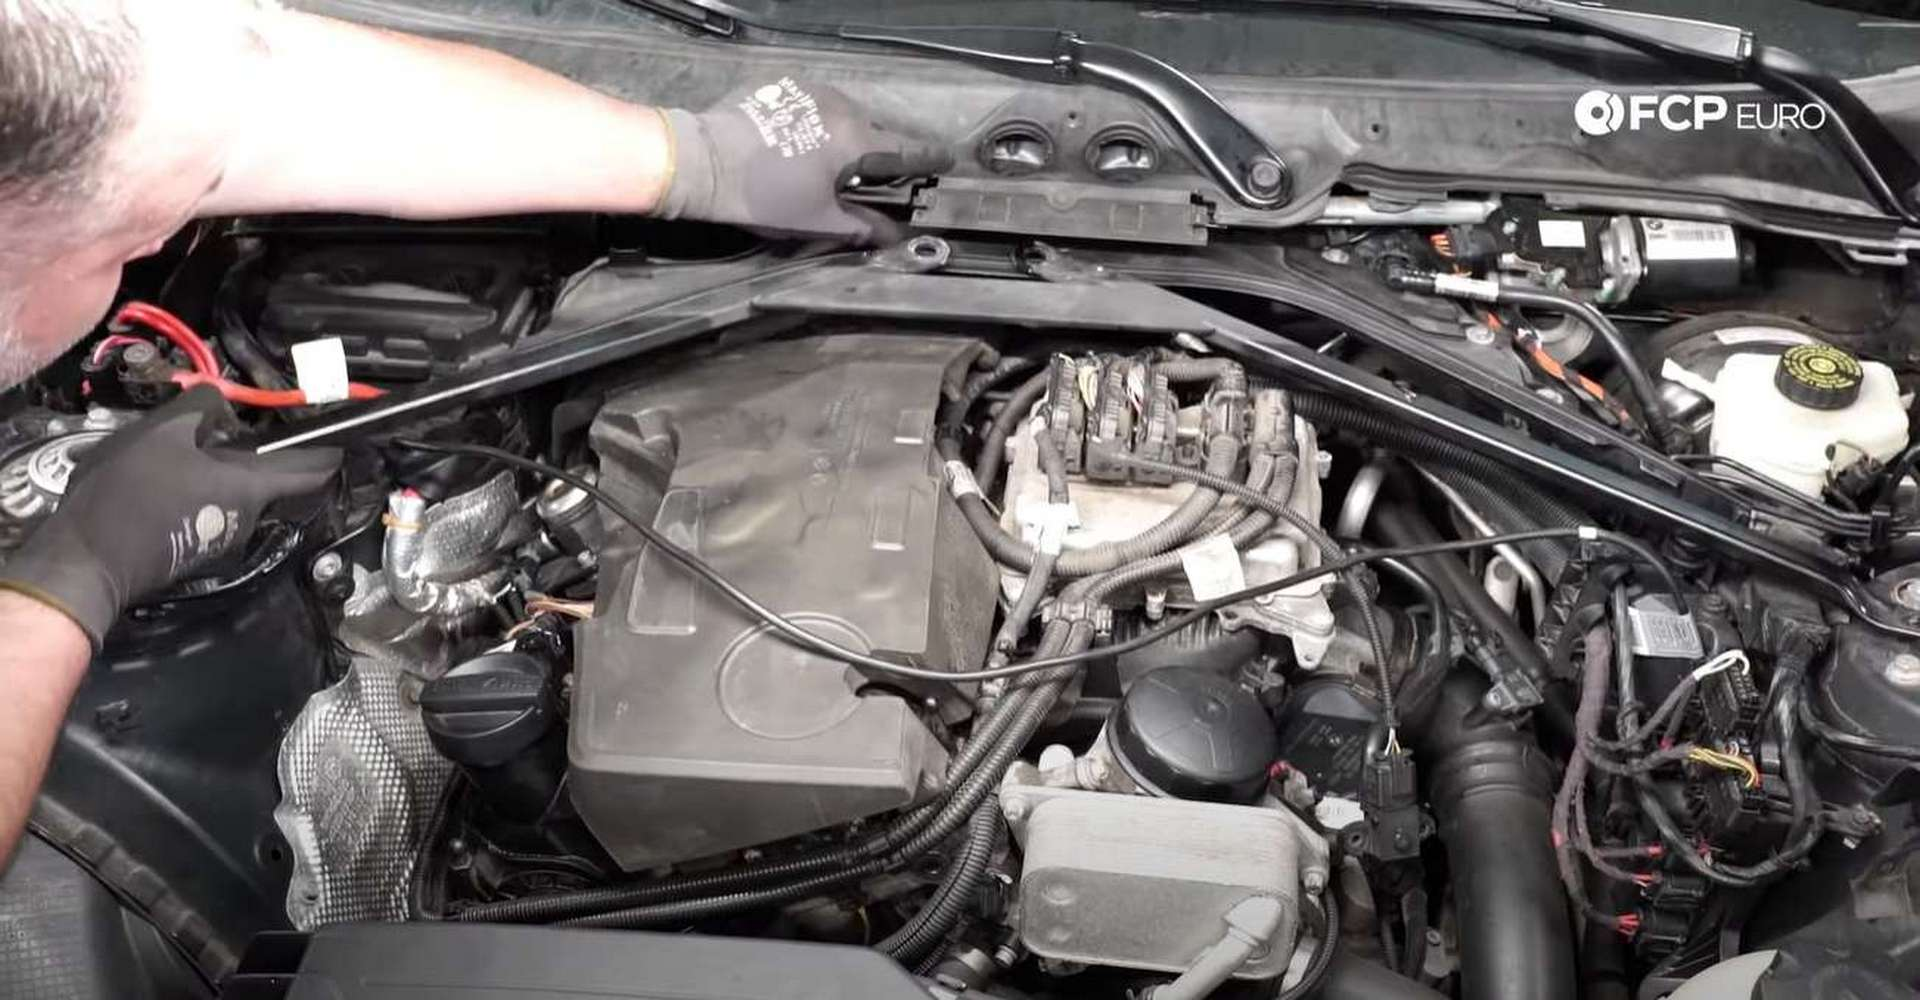 DIY BMW F30 Fuel Injector Replacement refitting the strut tower brace